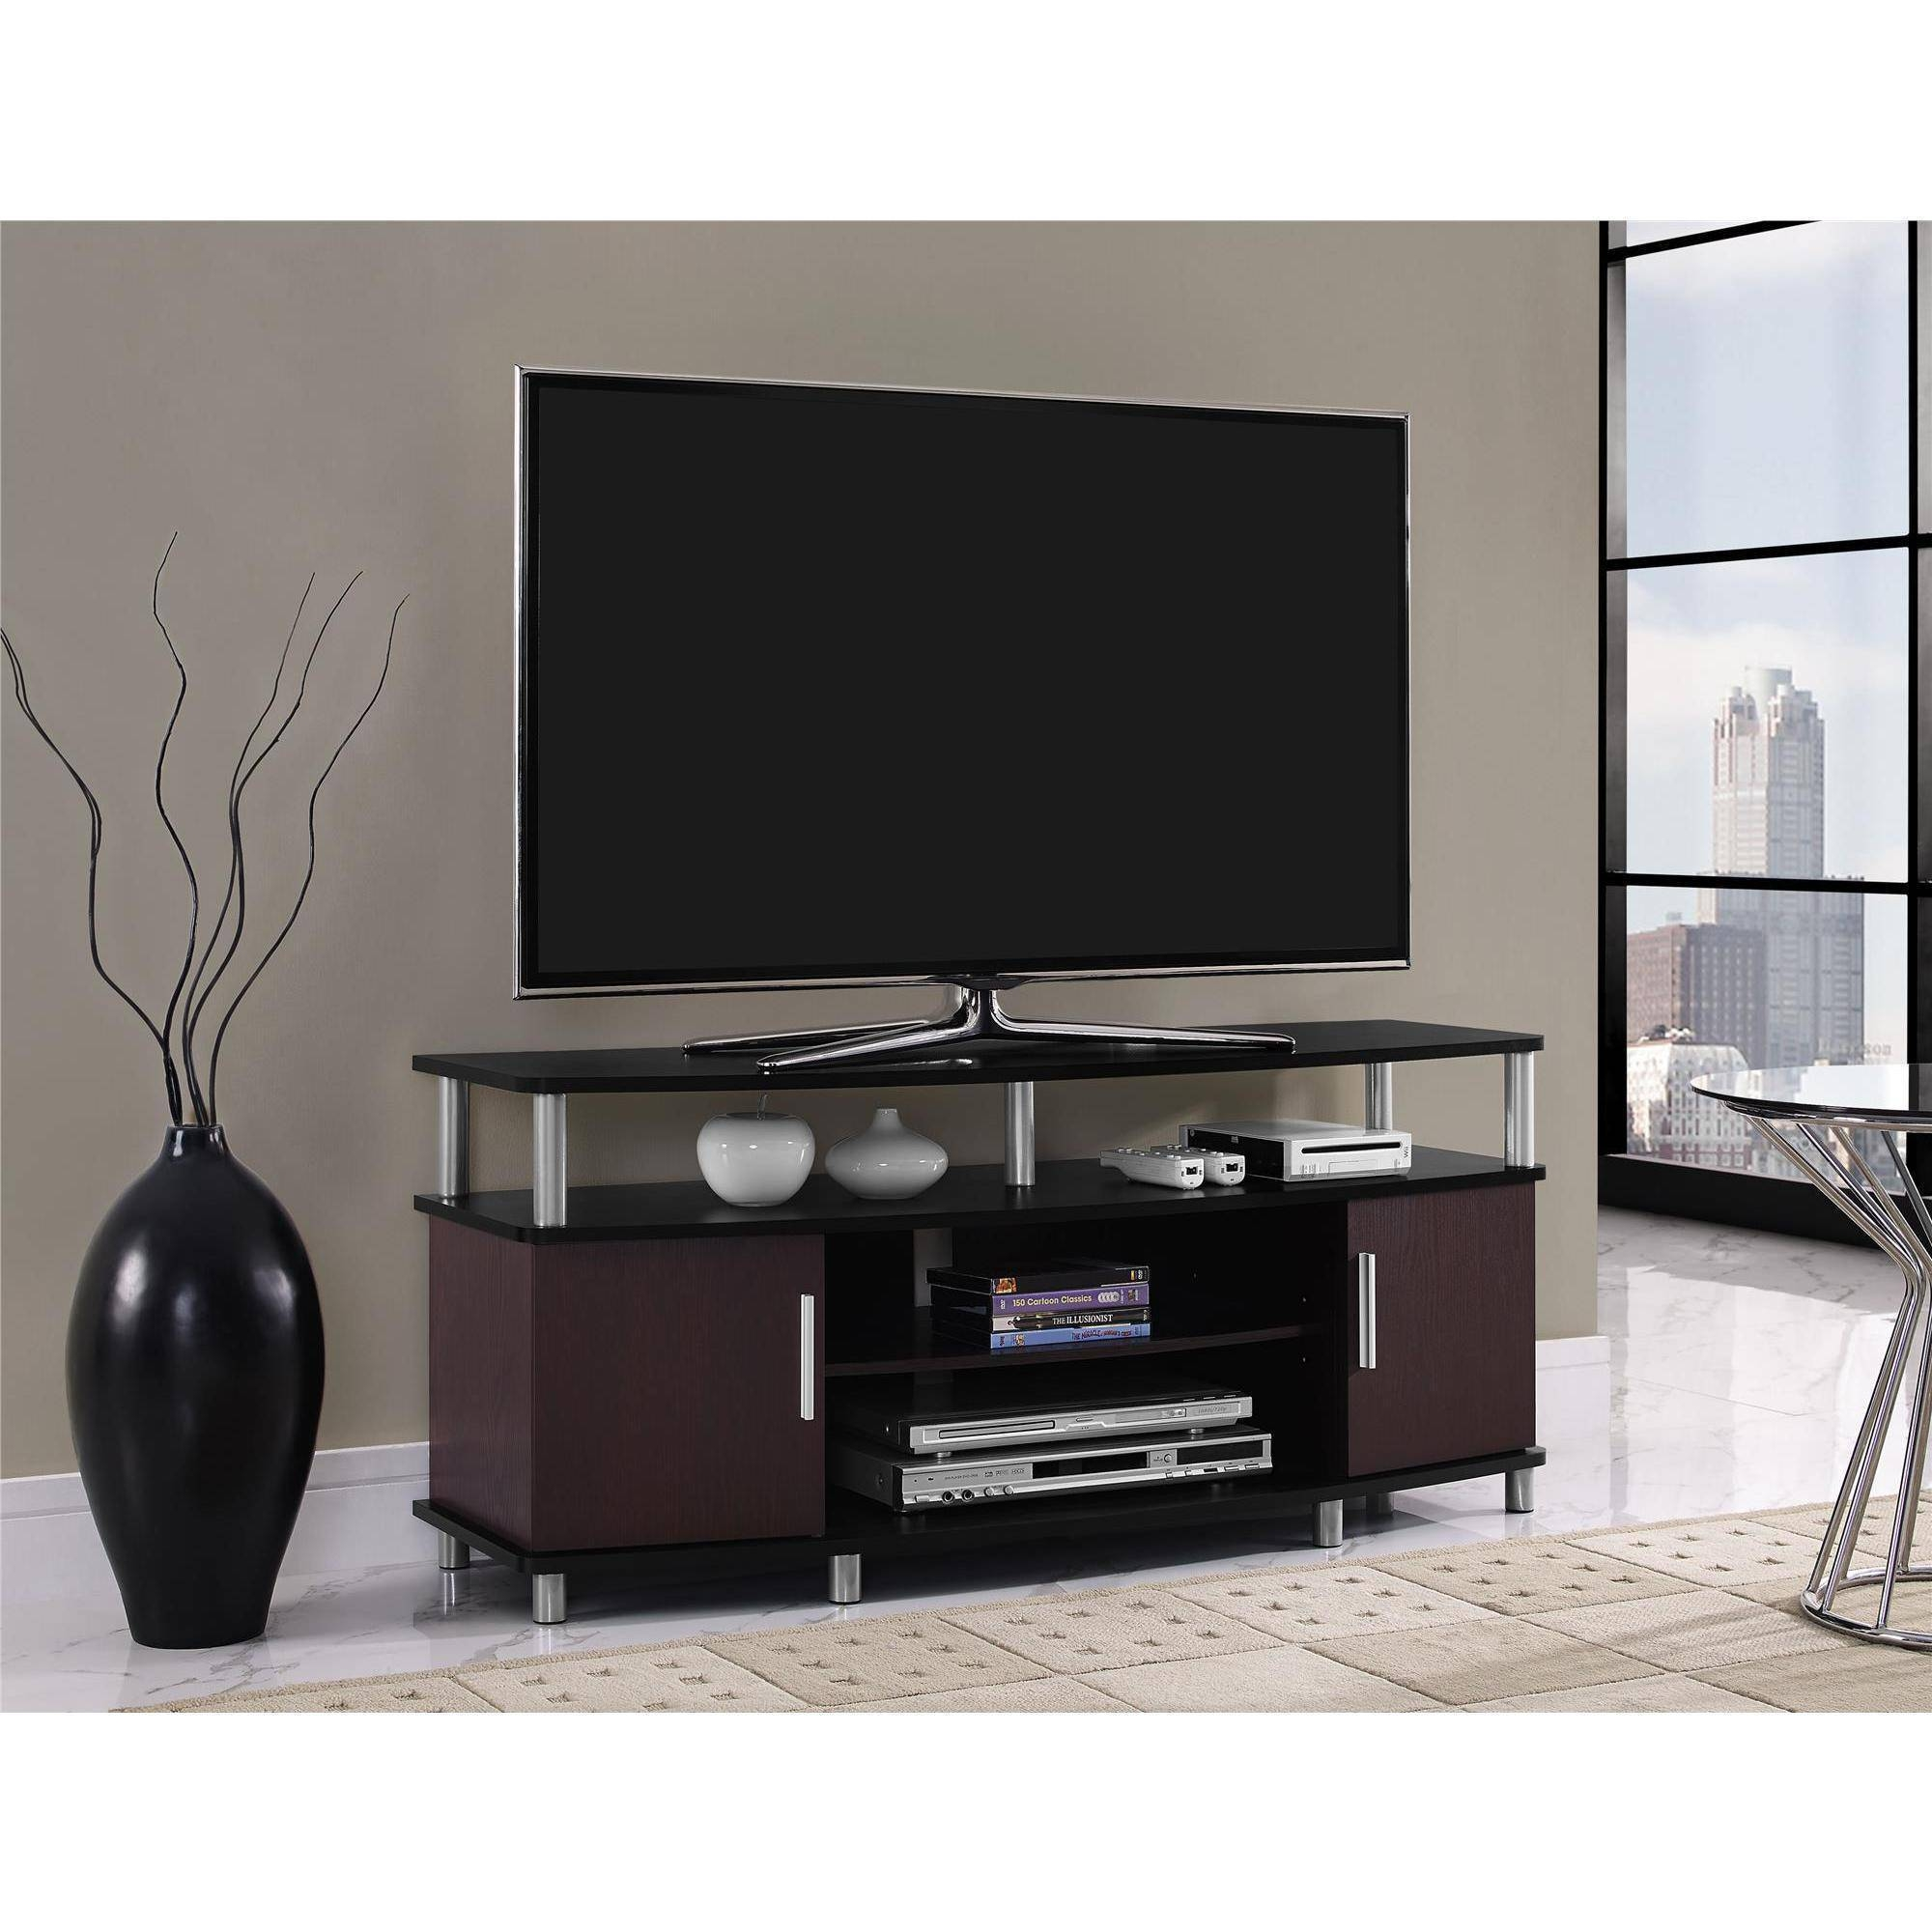 Wall Units. Glamorous Entertainment Stand Walmart: Exciting in Tv Drawer Units (Image 13 of 15)